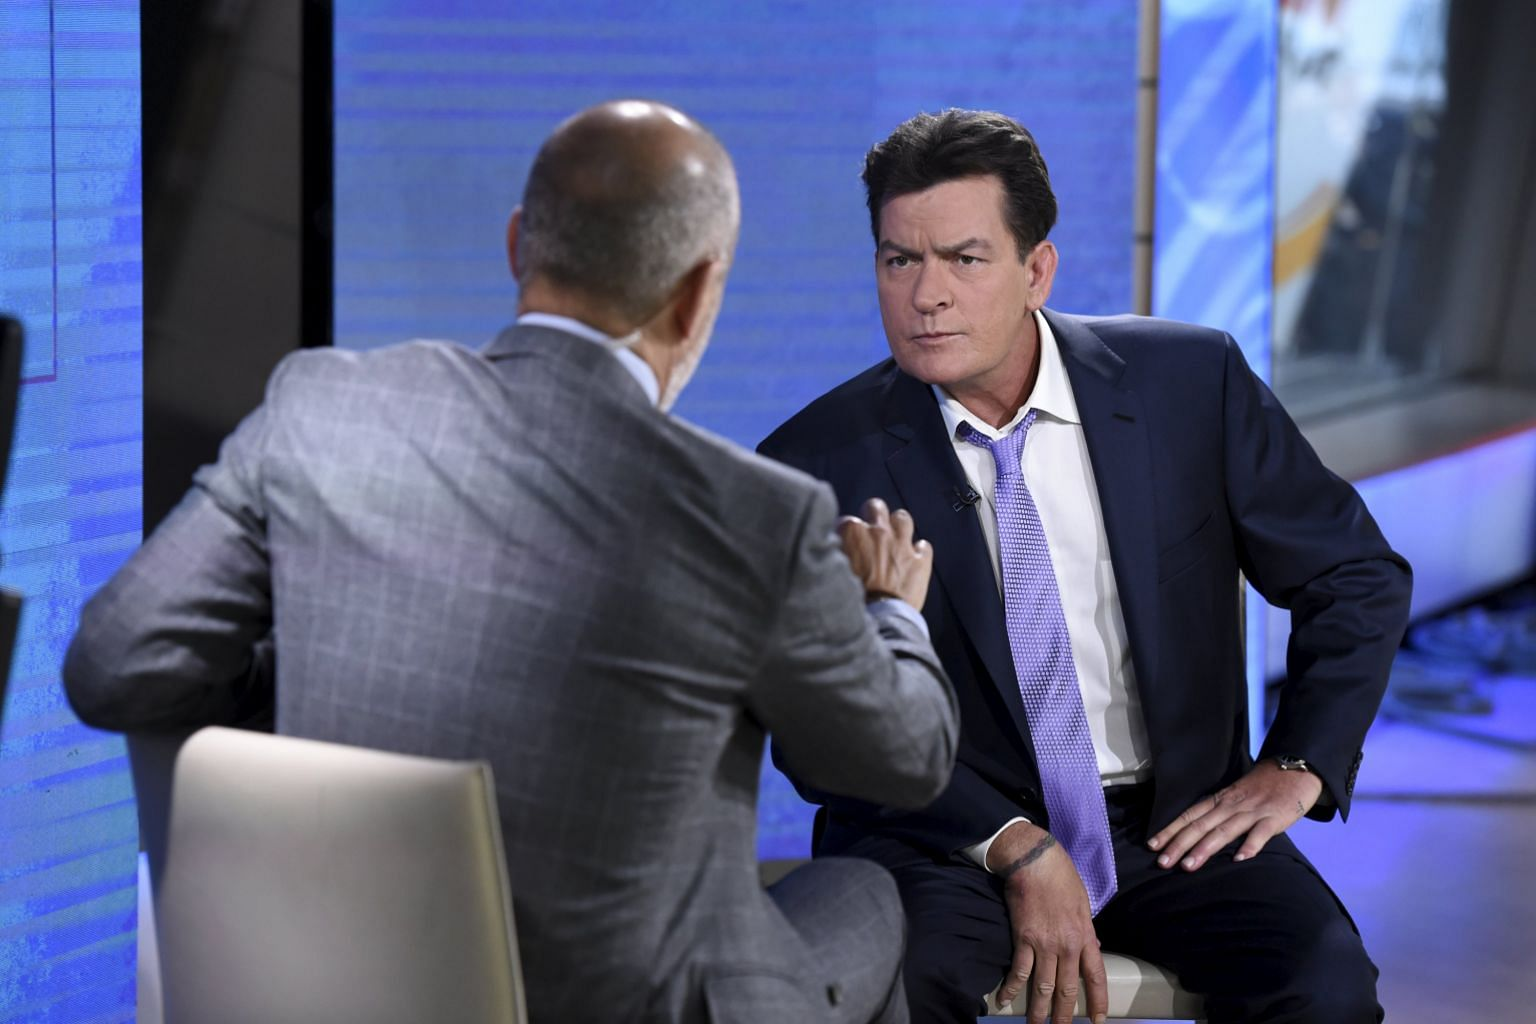 Actor Charlie Sheen (above) with Matt Lauer, host of NBC's Today show.